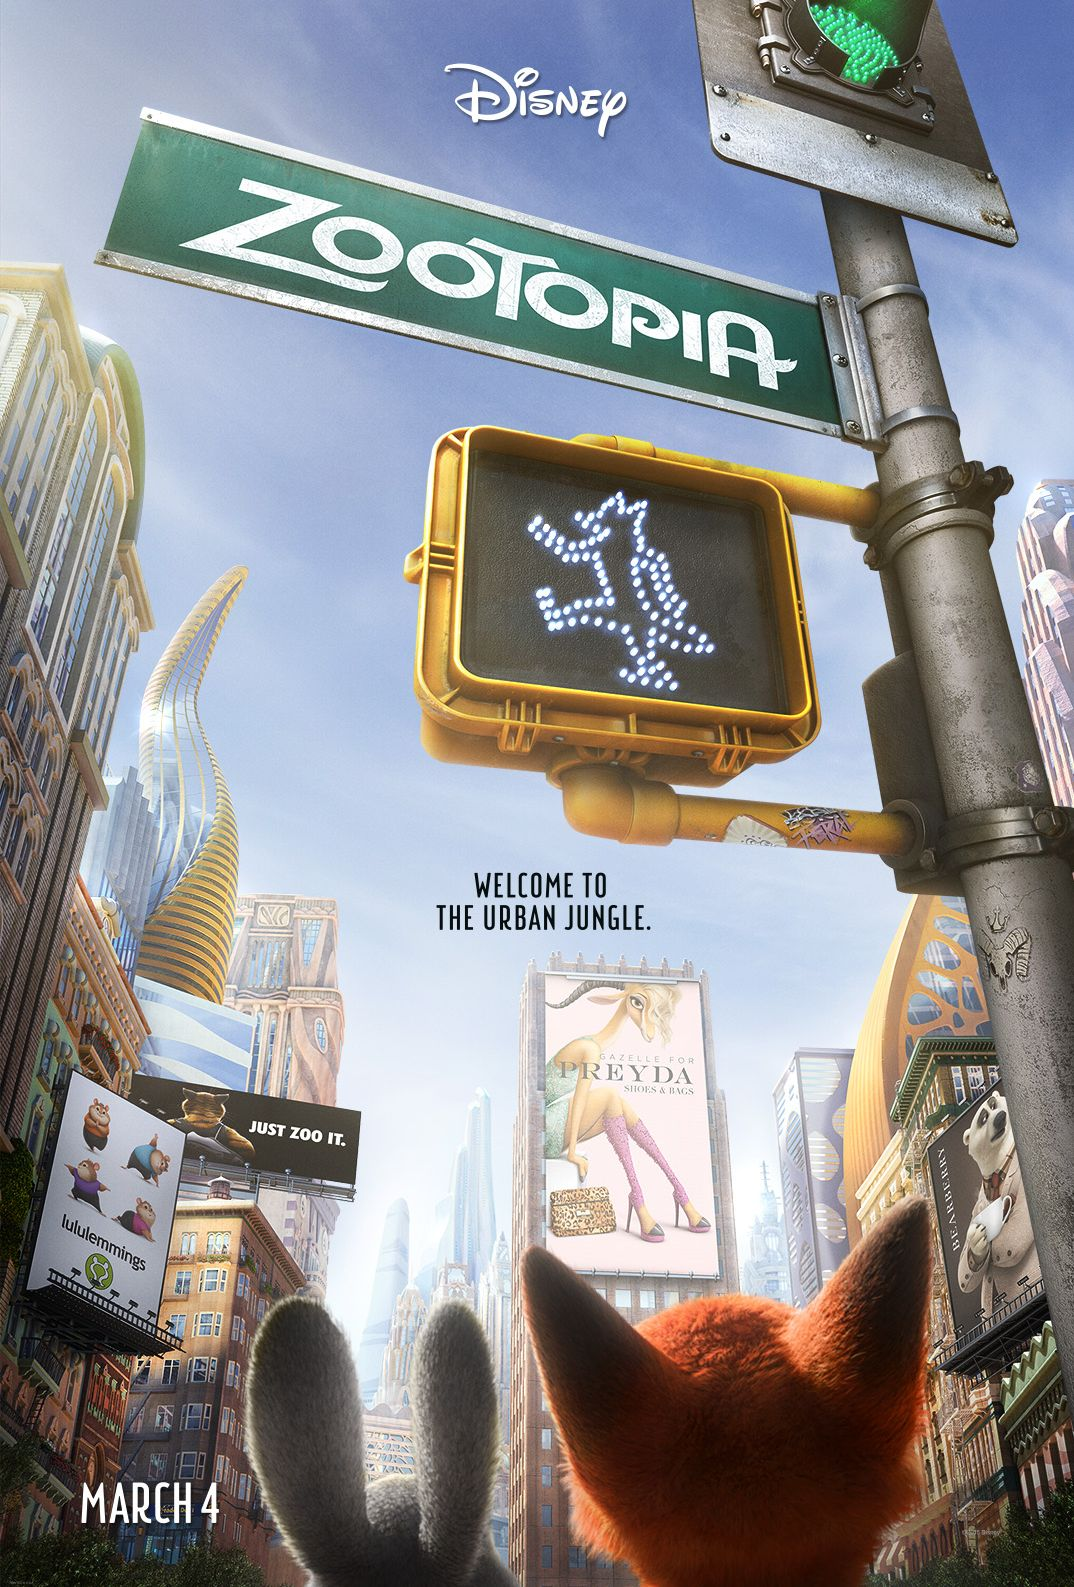 The new poster for Disney's 'Zootopia' coming to theaters Ma